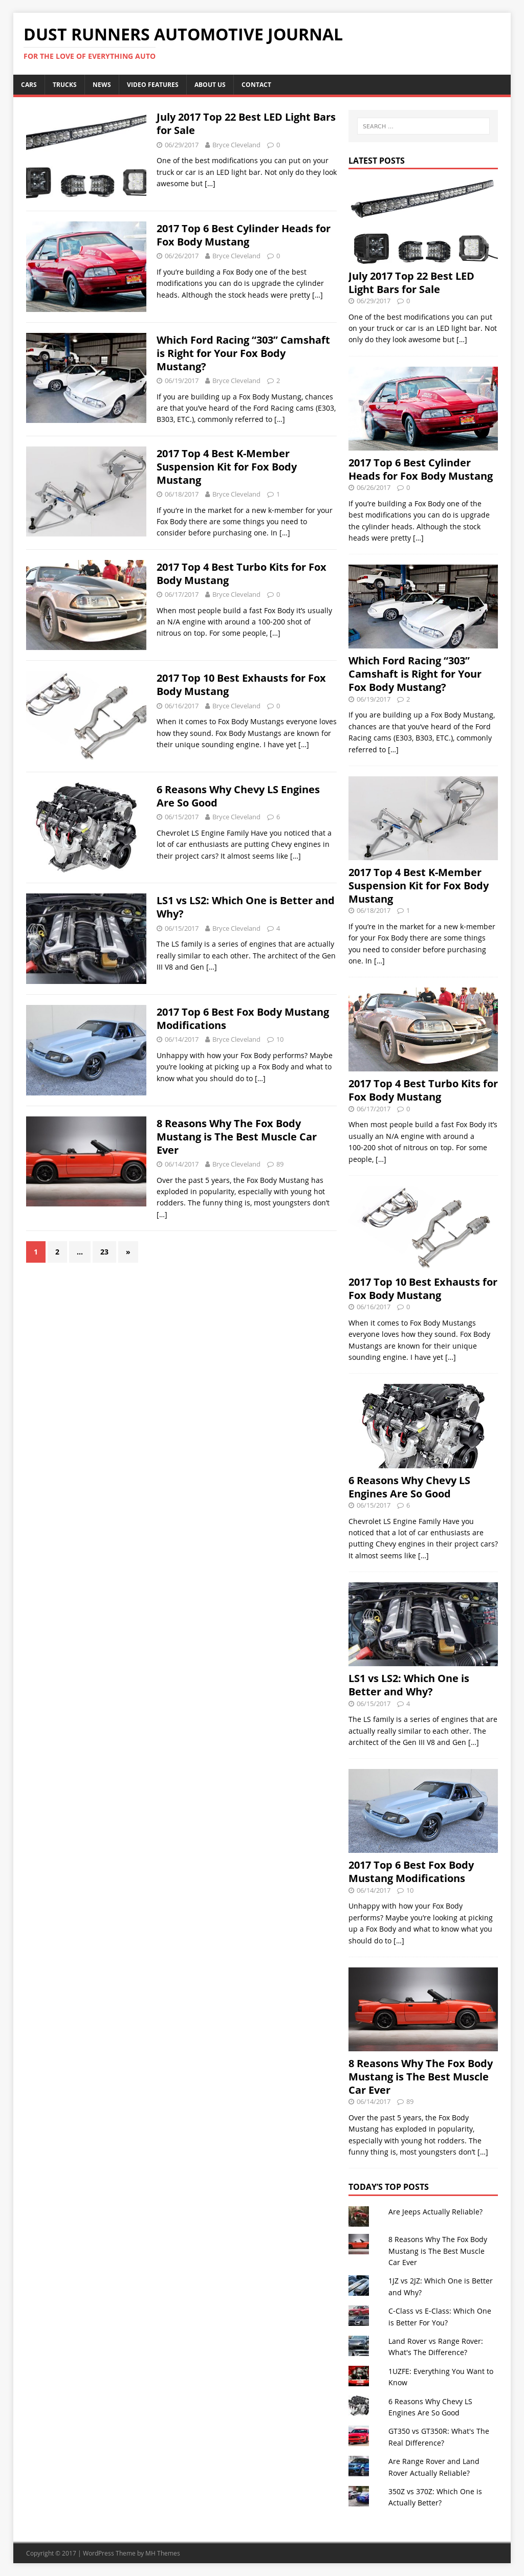 Dust Runners Automotive Journal Competitors, Revenue and